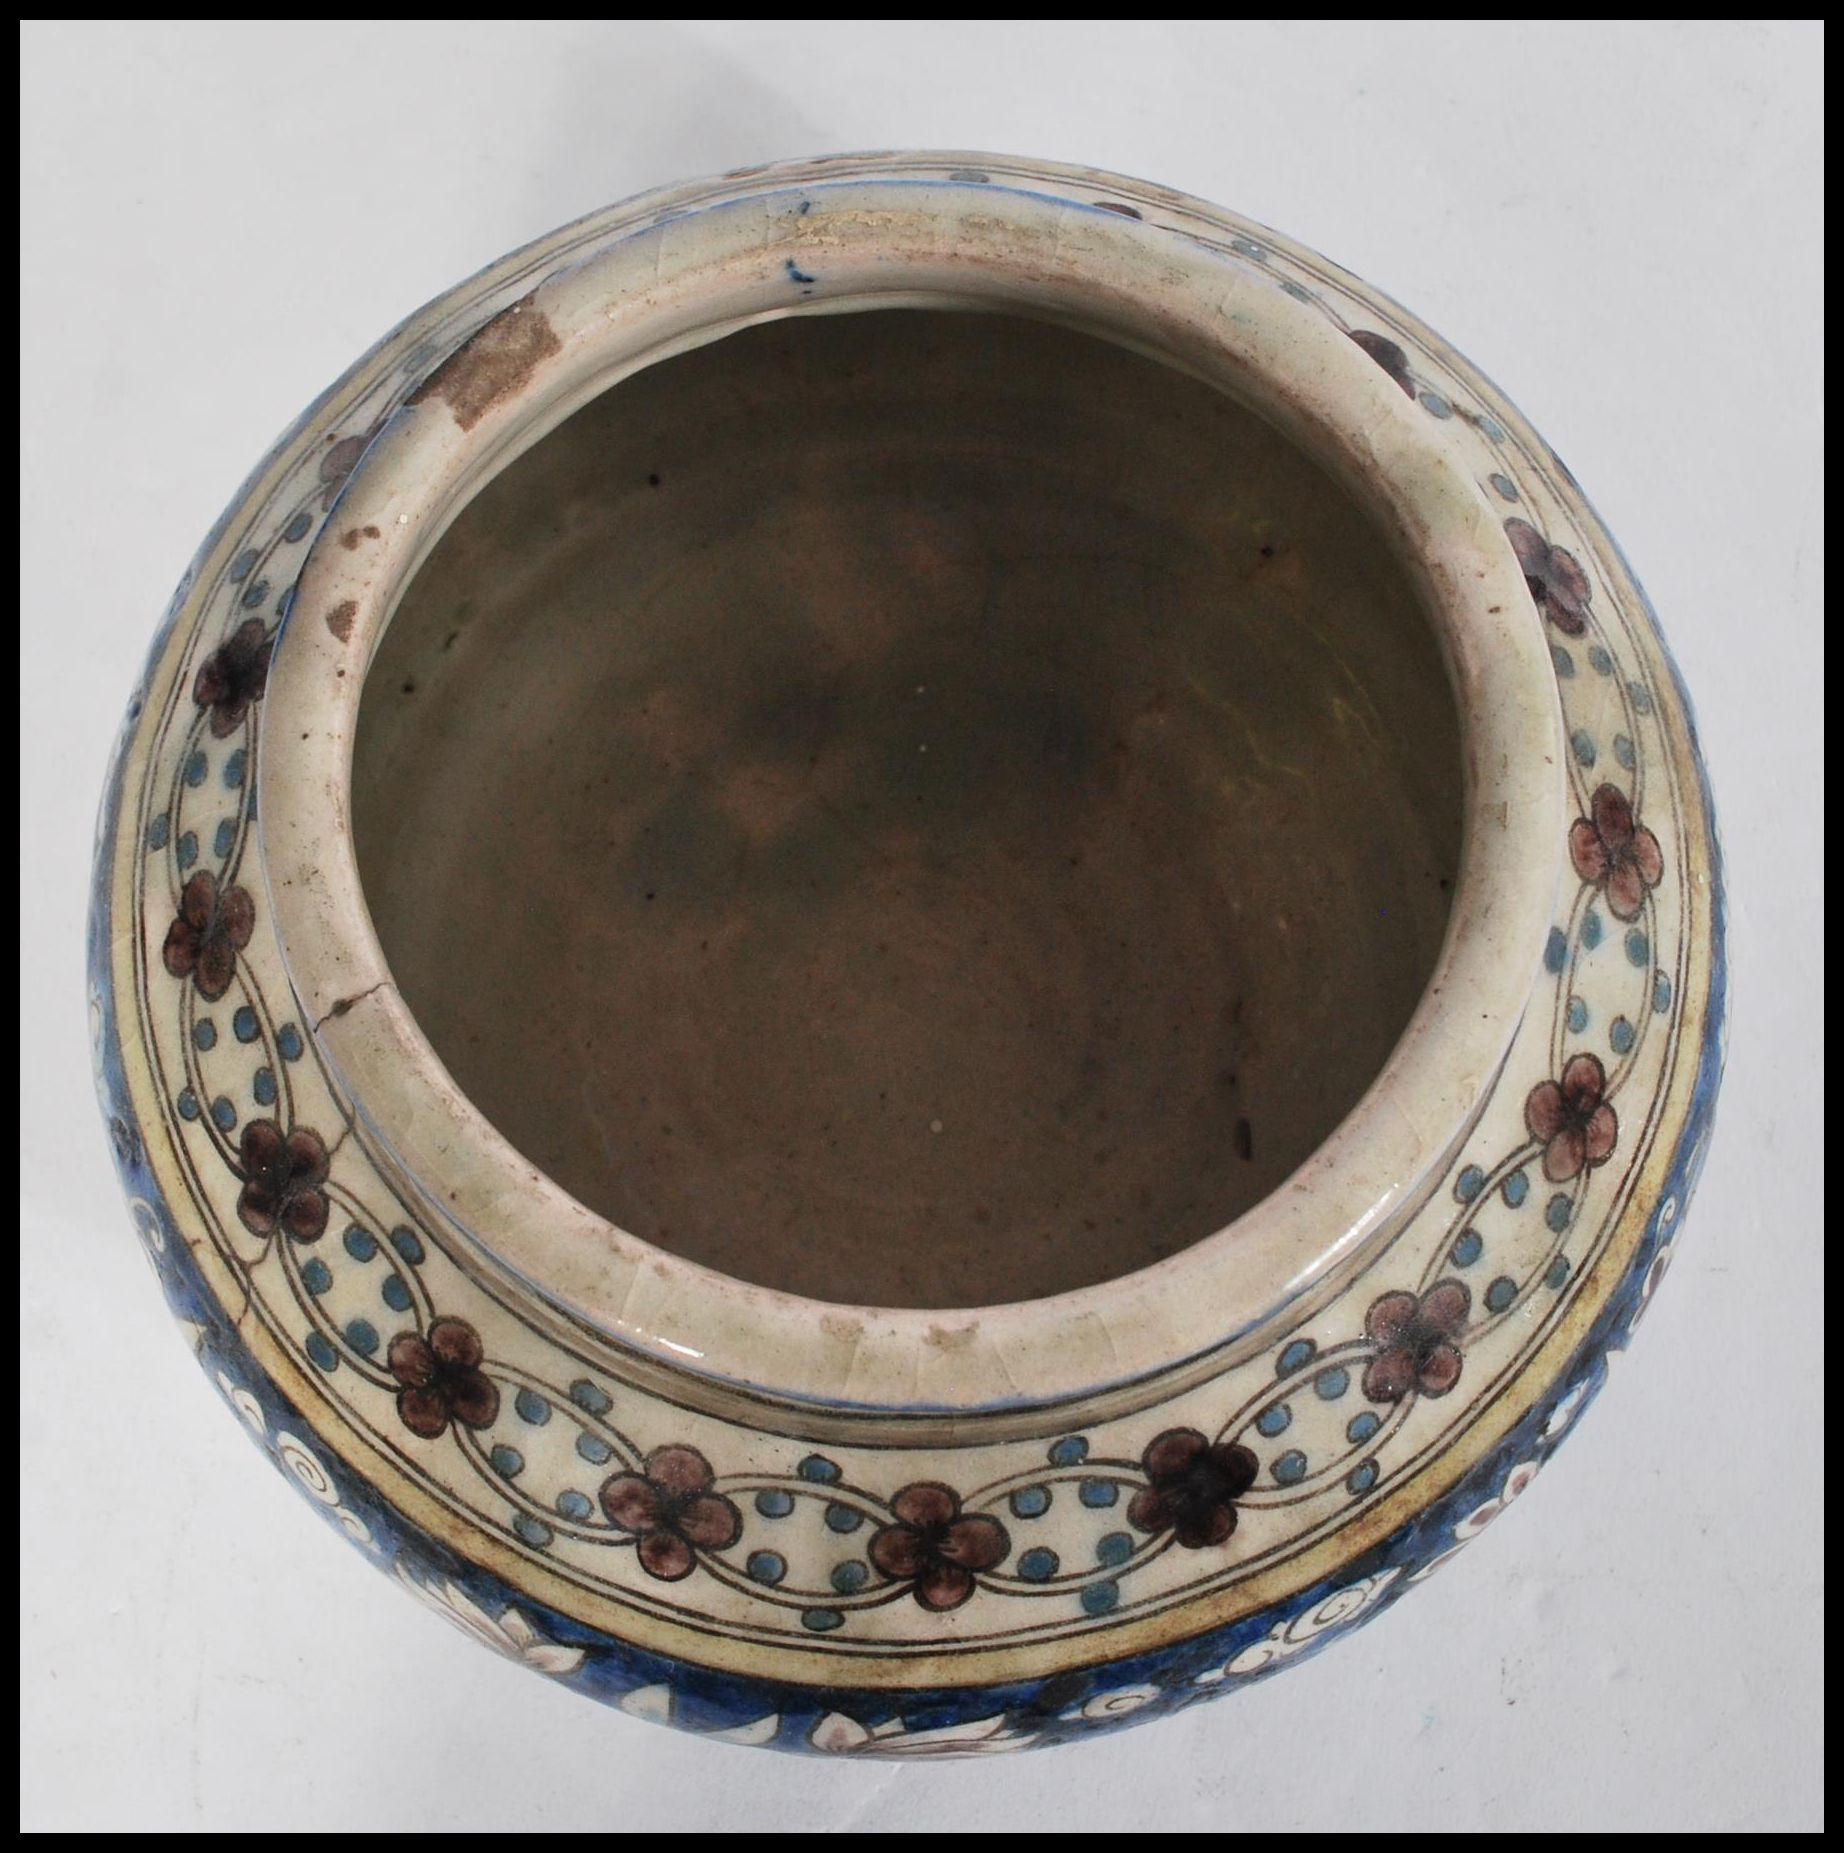 Lot 11 - A 19th century Islamic Middle Eastern pottery Faience bowl of bulbous form having hand painted